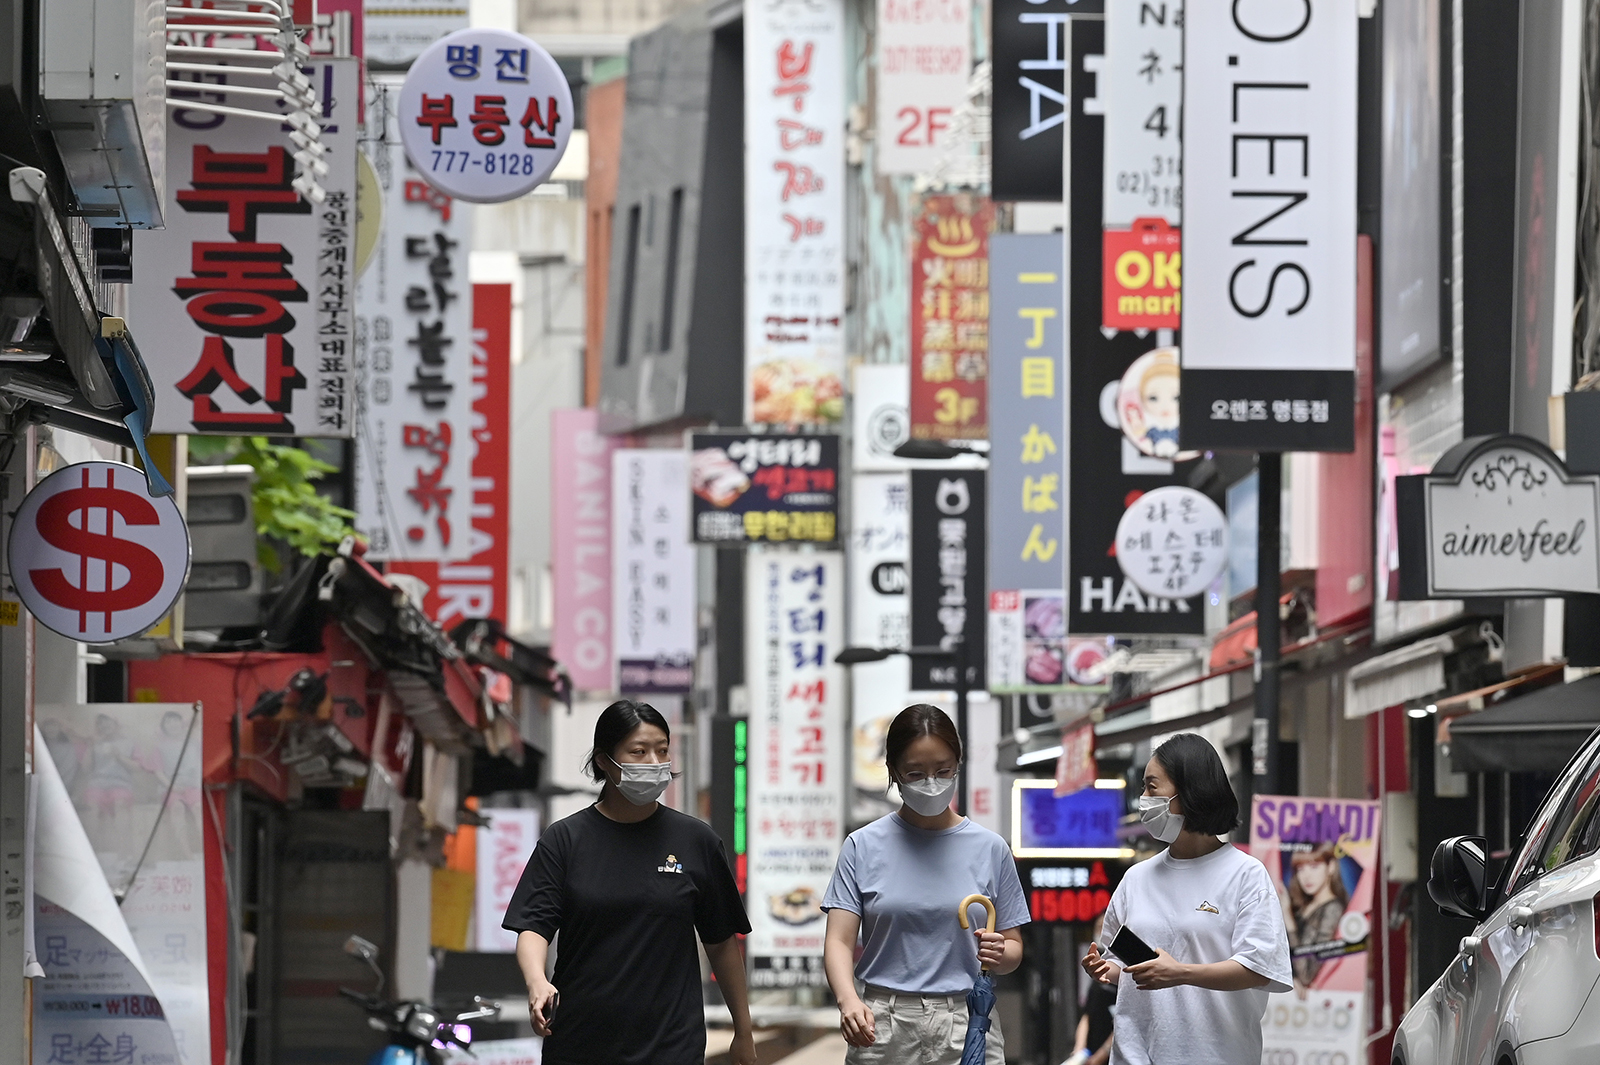 People walk through the Myeongdong shopping district in Seoul, South Korea, on August 27.